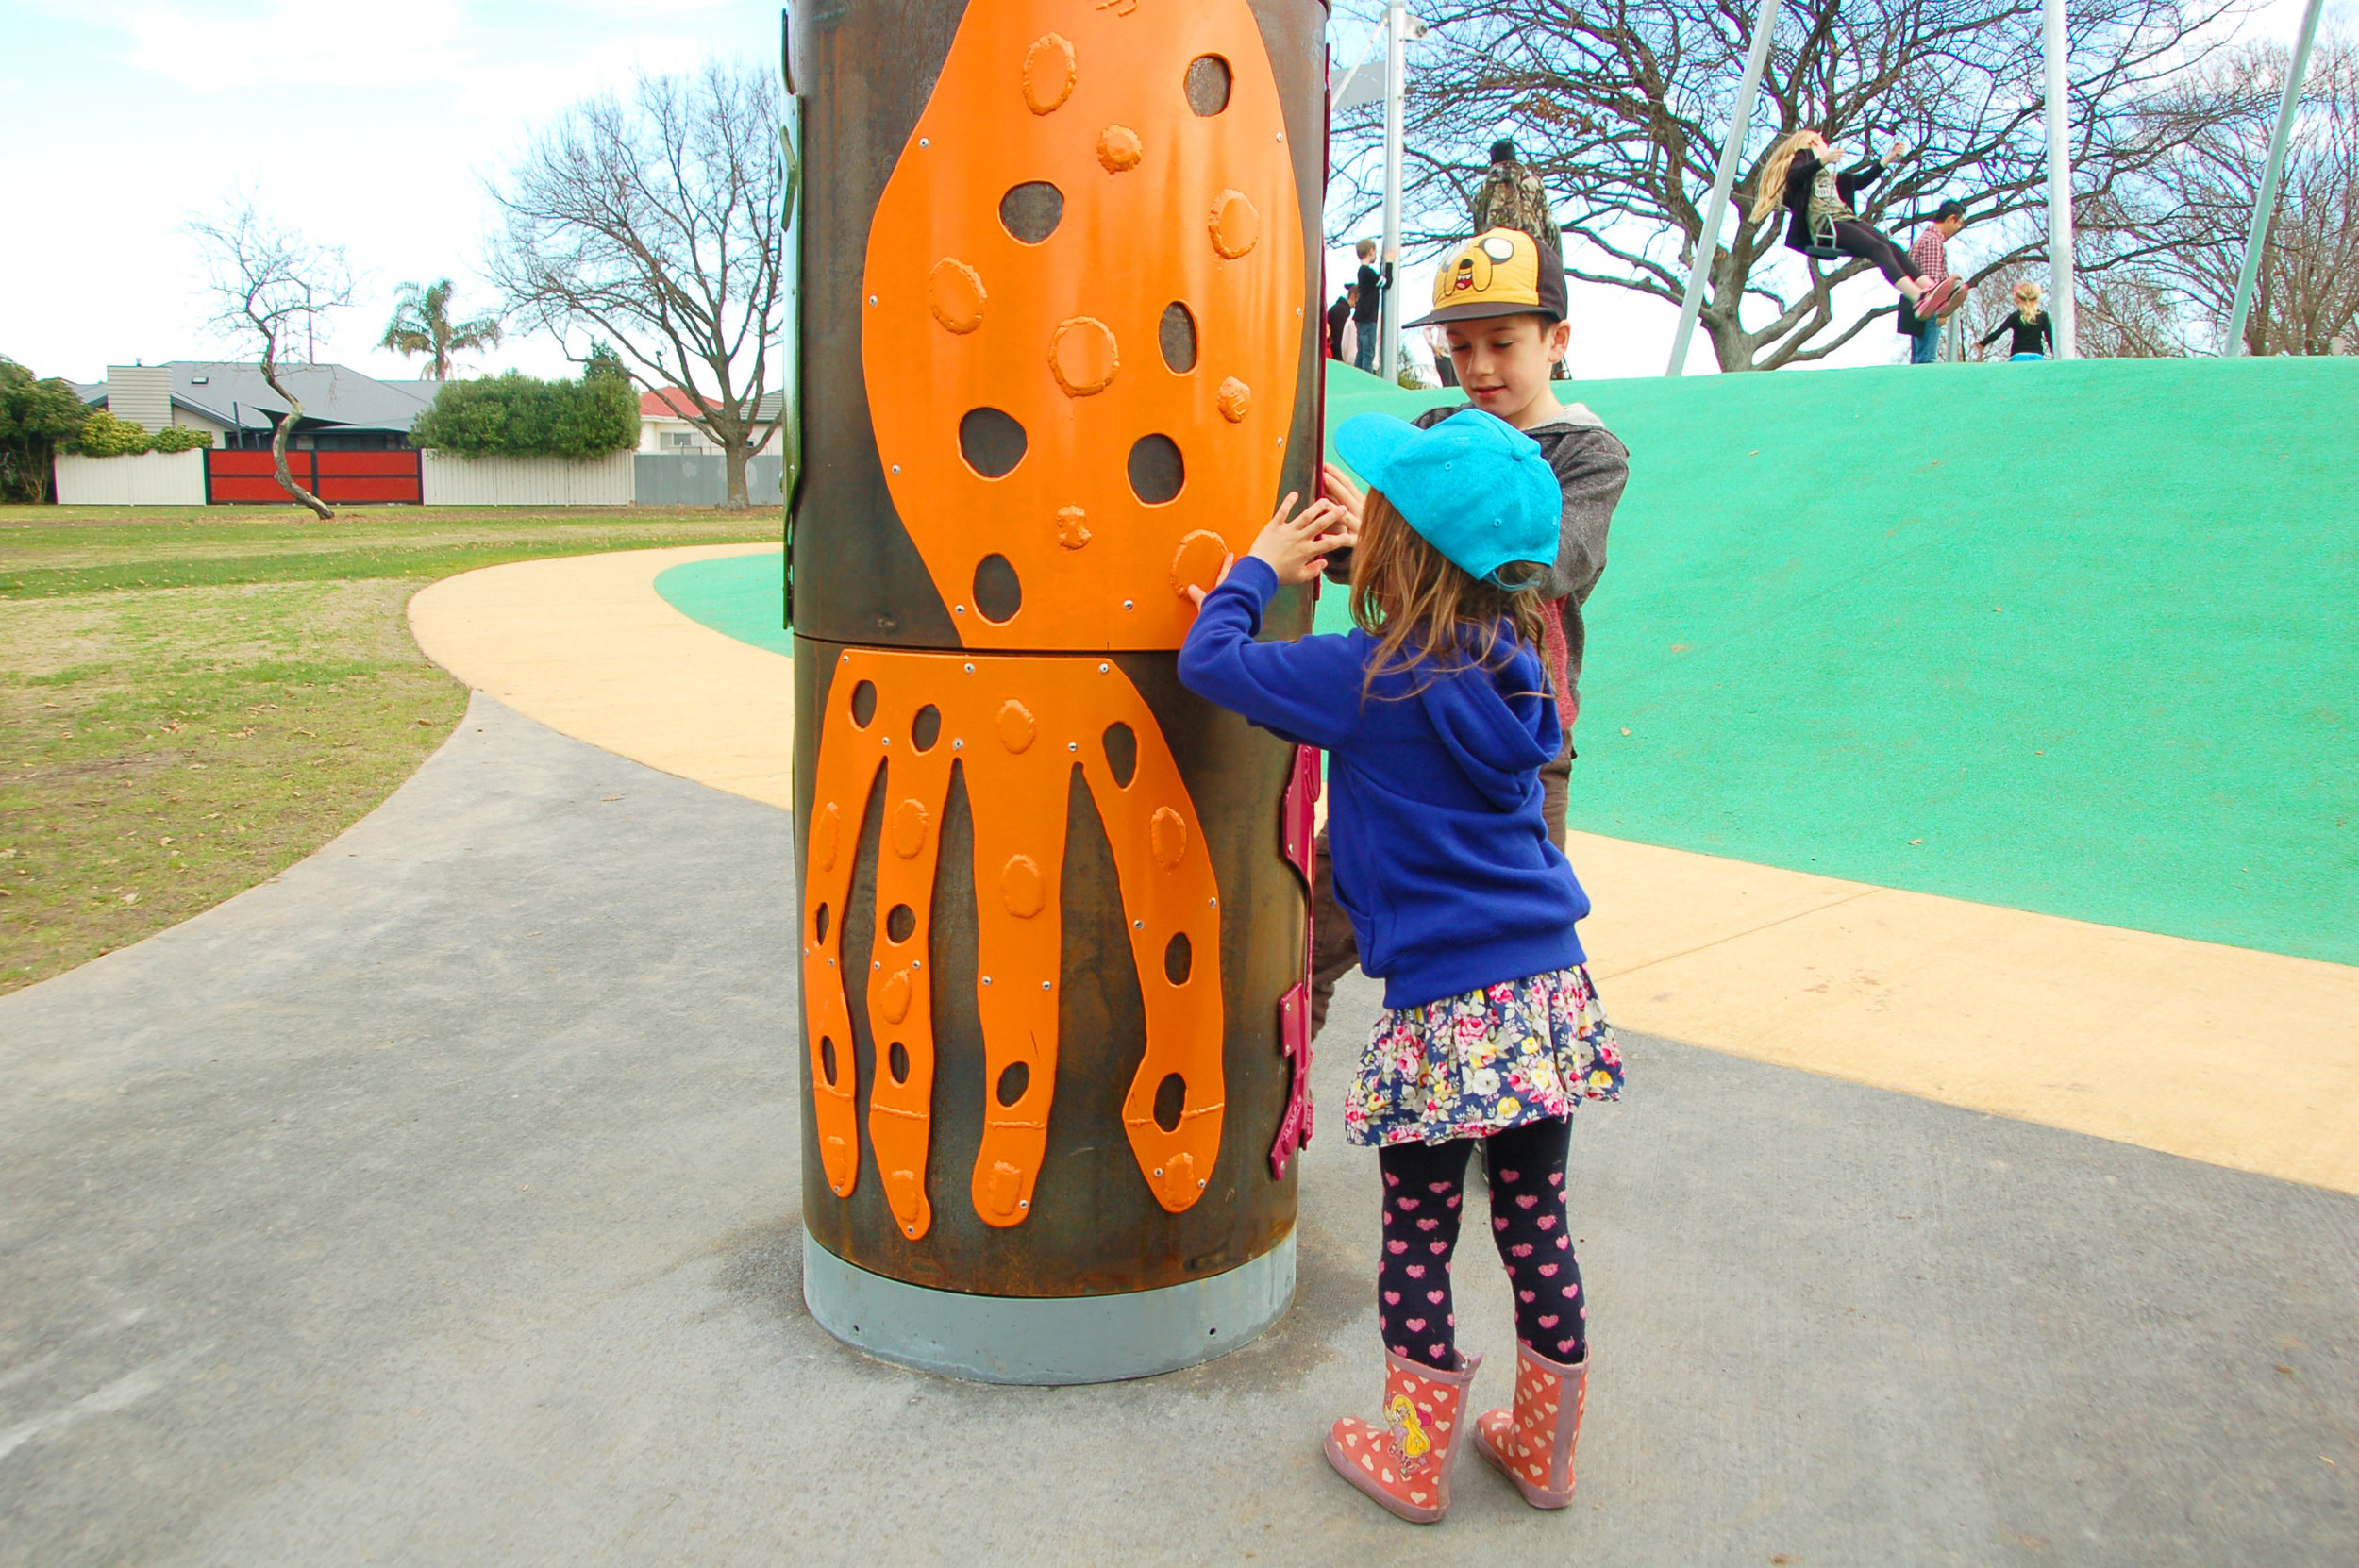 The playground also features functional artwork with messages in braille for the sight-impaired and a range of sensory equipment such as a large xylophone, musical bridge and drums.